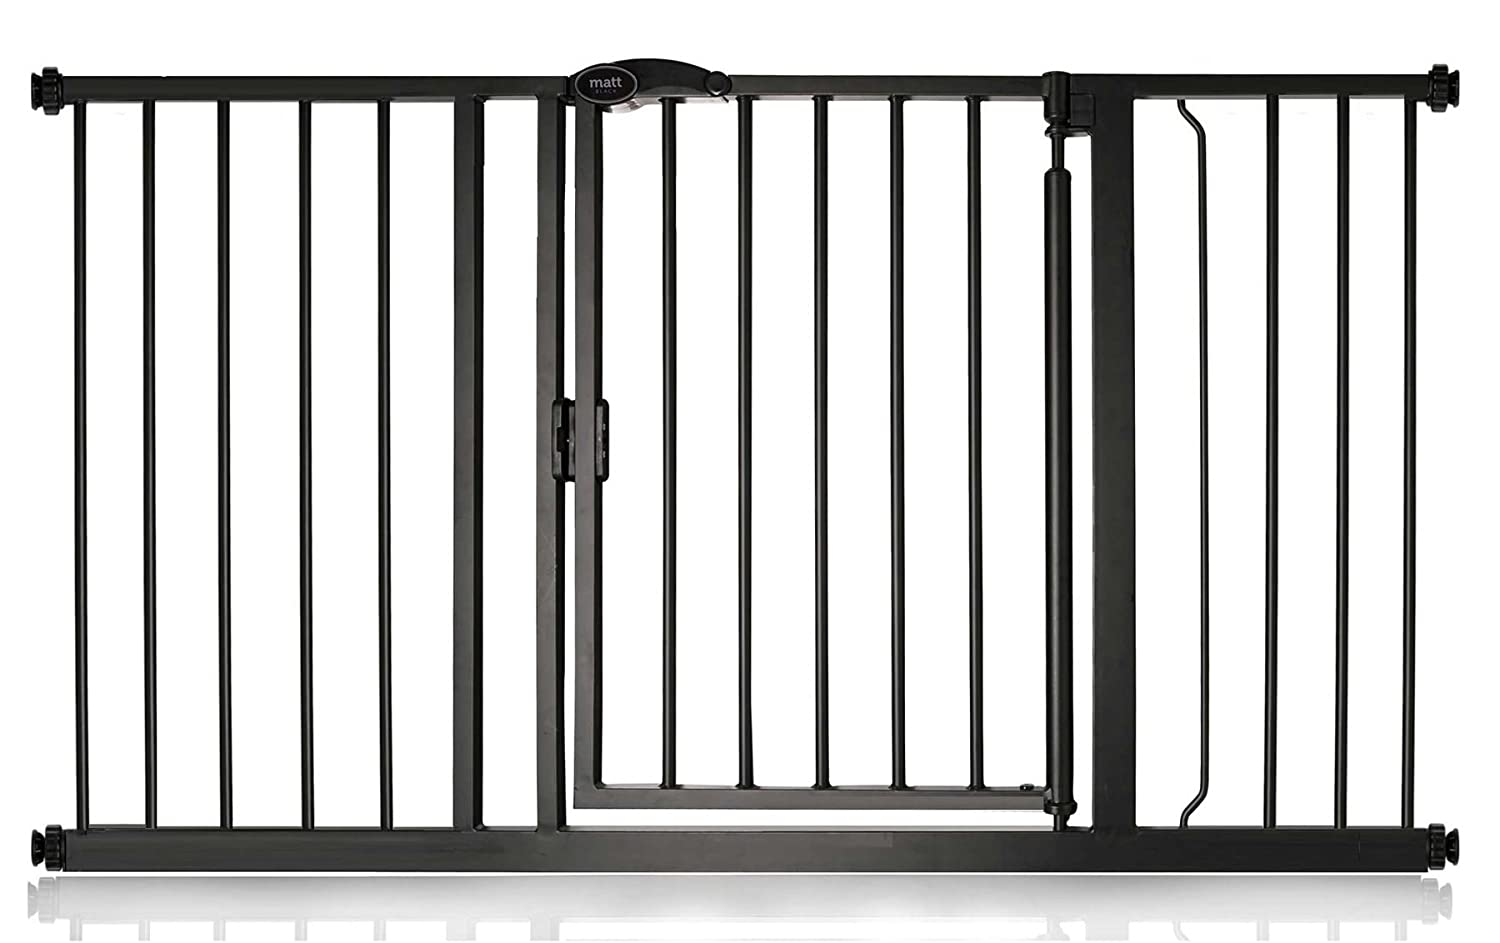 132.6cm139.6cm Bettacare Auto Close Matt Black Pet Gate Range (103.8cm110.8cm)